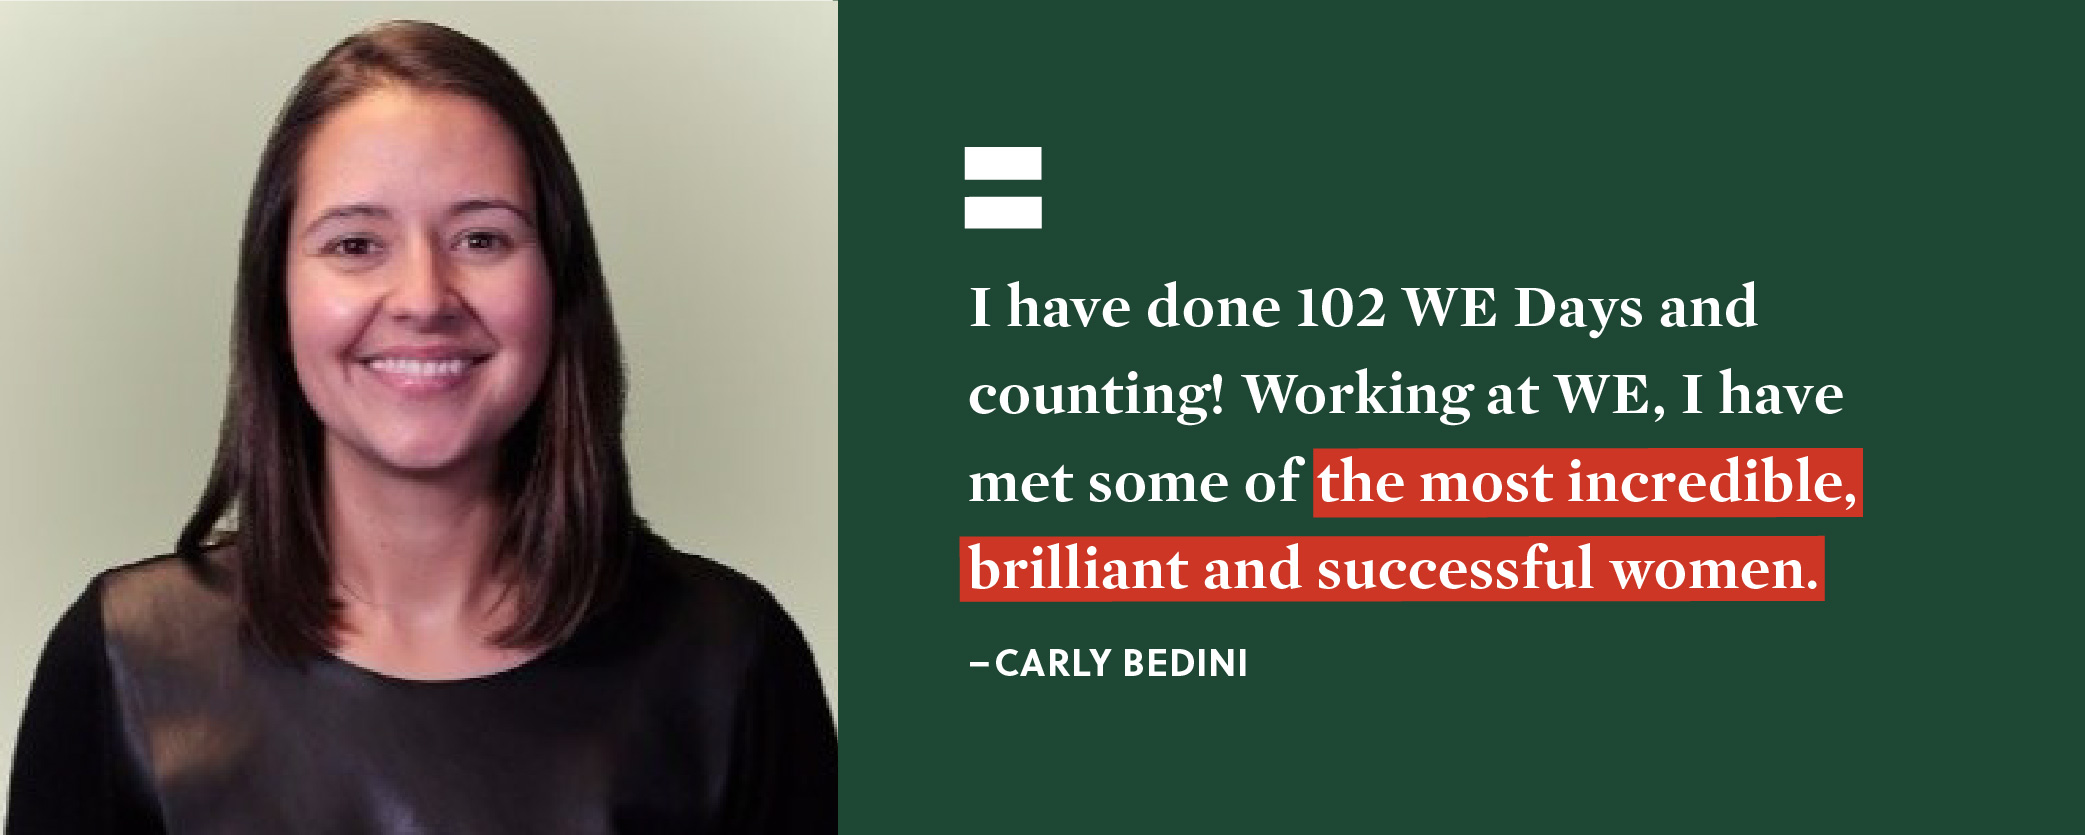 Quote. I have done 102 WE Days and counting! Working at WE, I have met some of the most incredible, brilliant and successful women. Unquote. Carly Bedini.